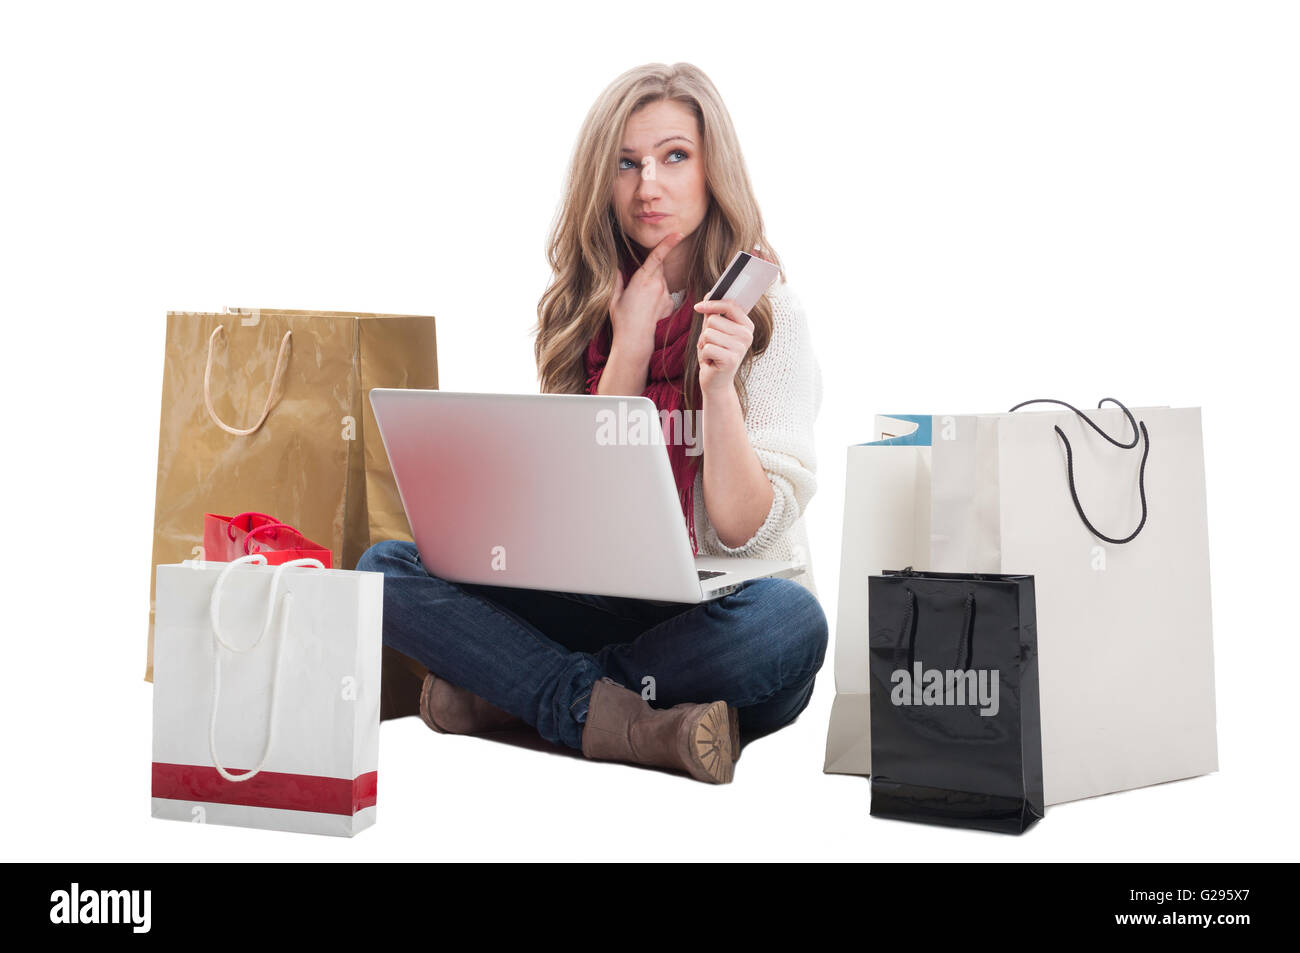 Spending money online using credit or debit card concept with a woman holding a laptop ready to spend money on e - Stock Image